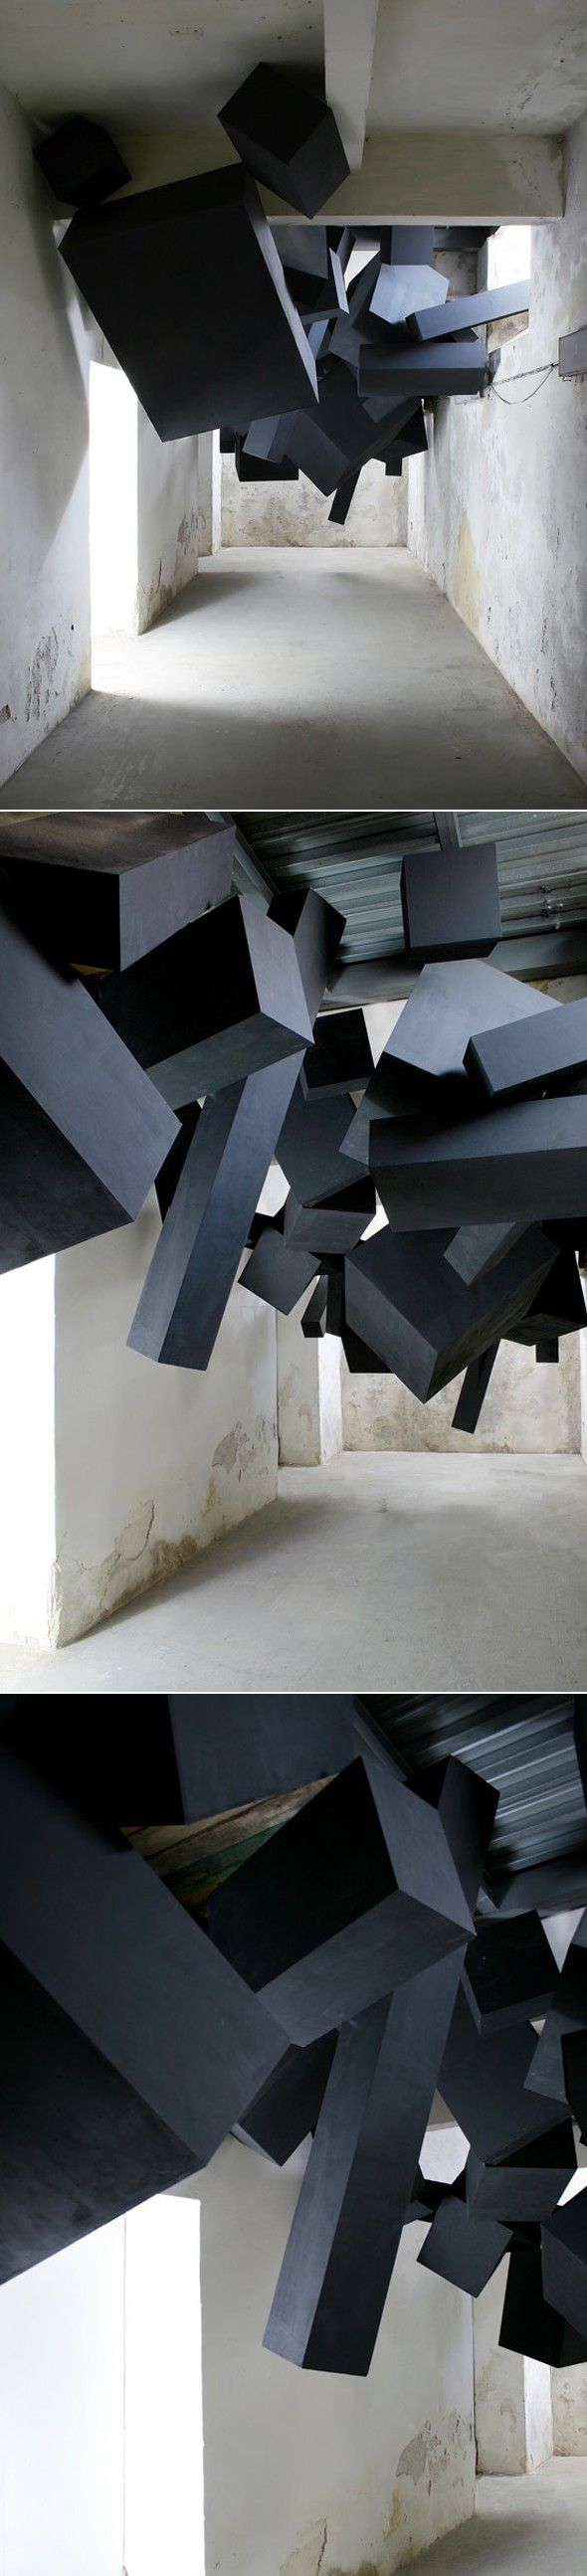 """SOONER OR LATER IT ALL COMES DOWN"""" is the name given to the last sculptural installation by visual design studio Via Grafik"""